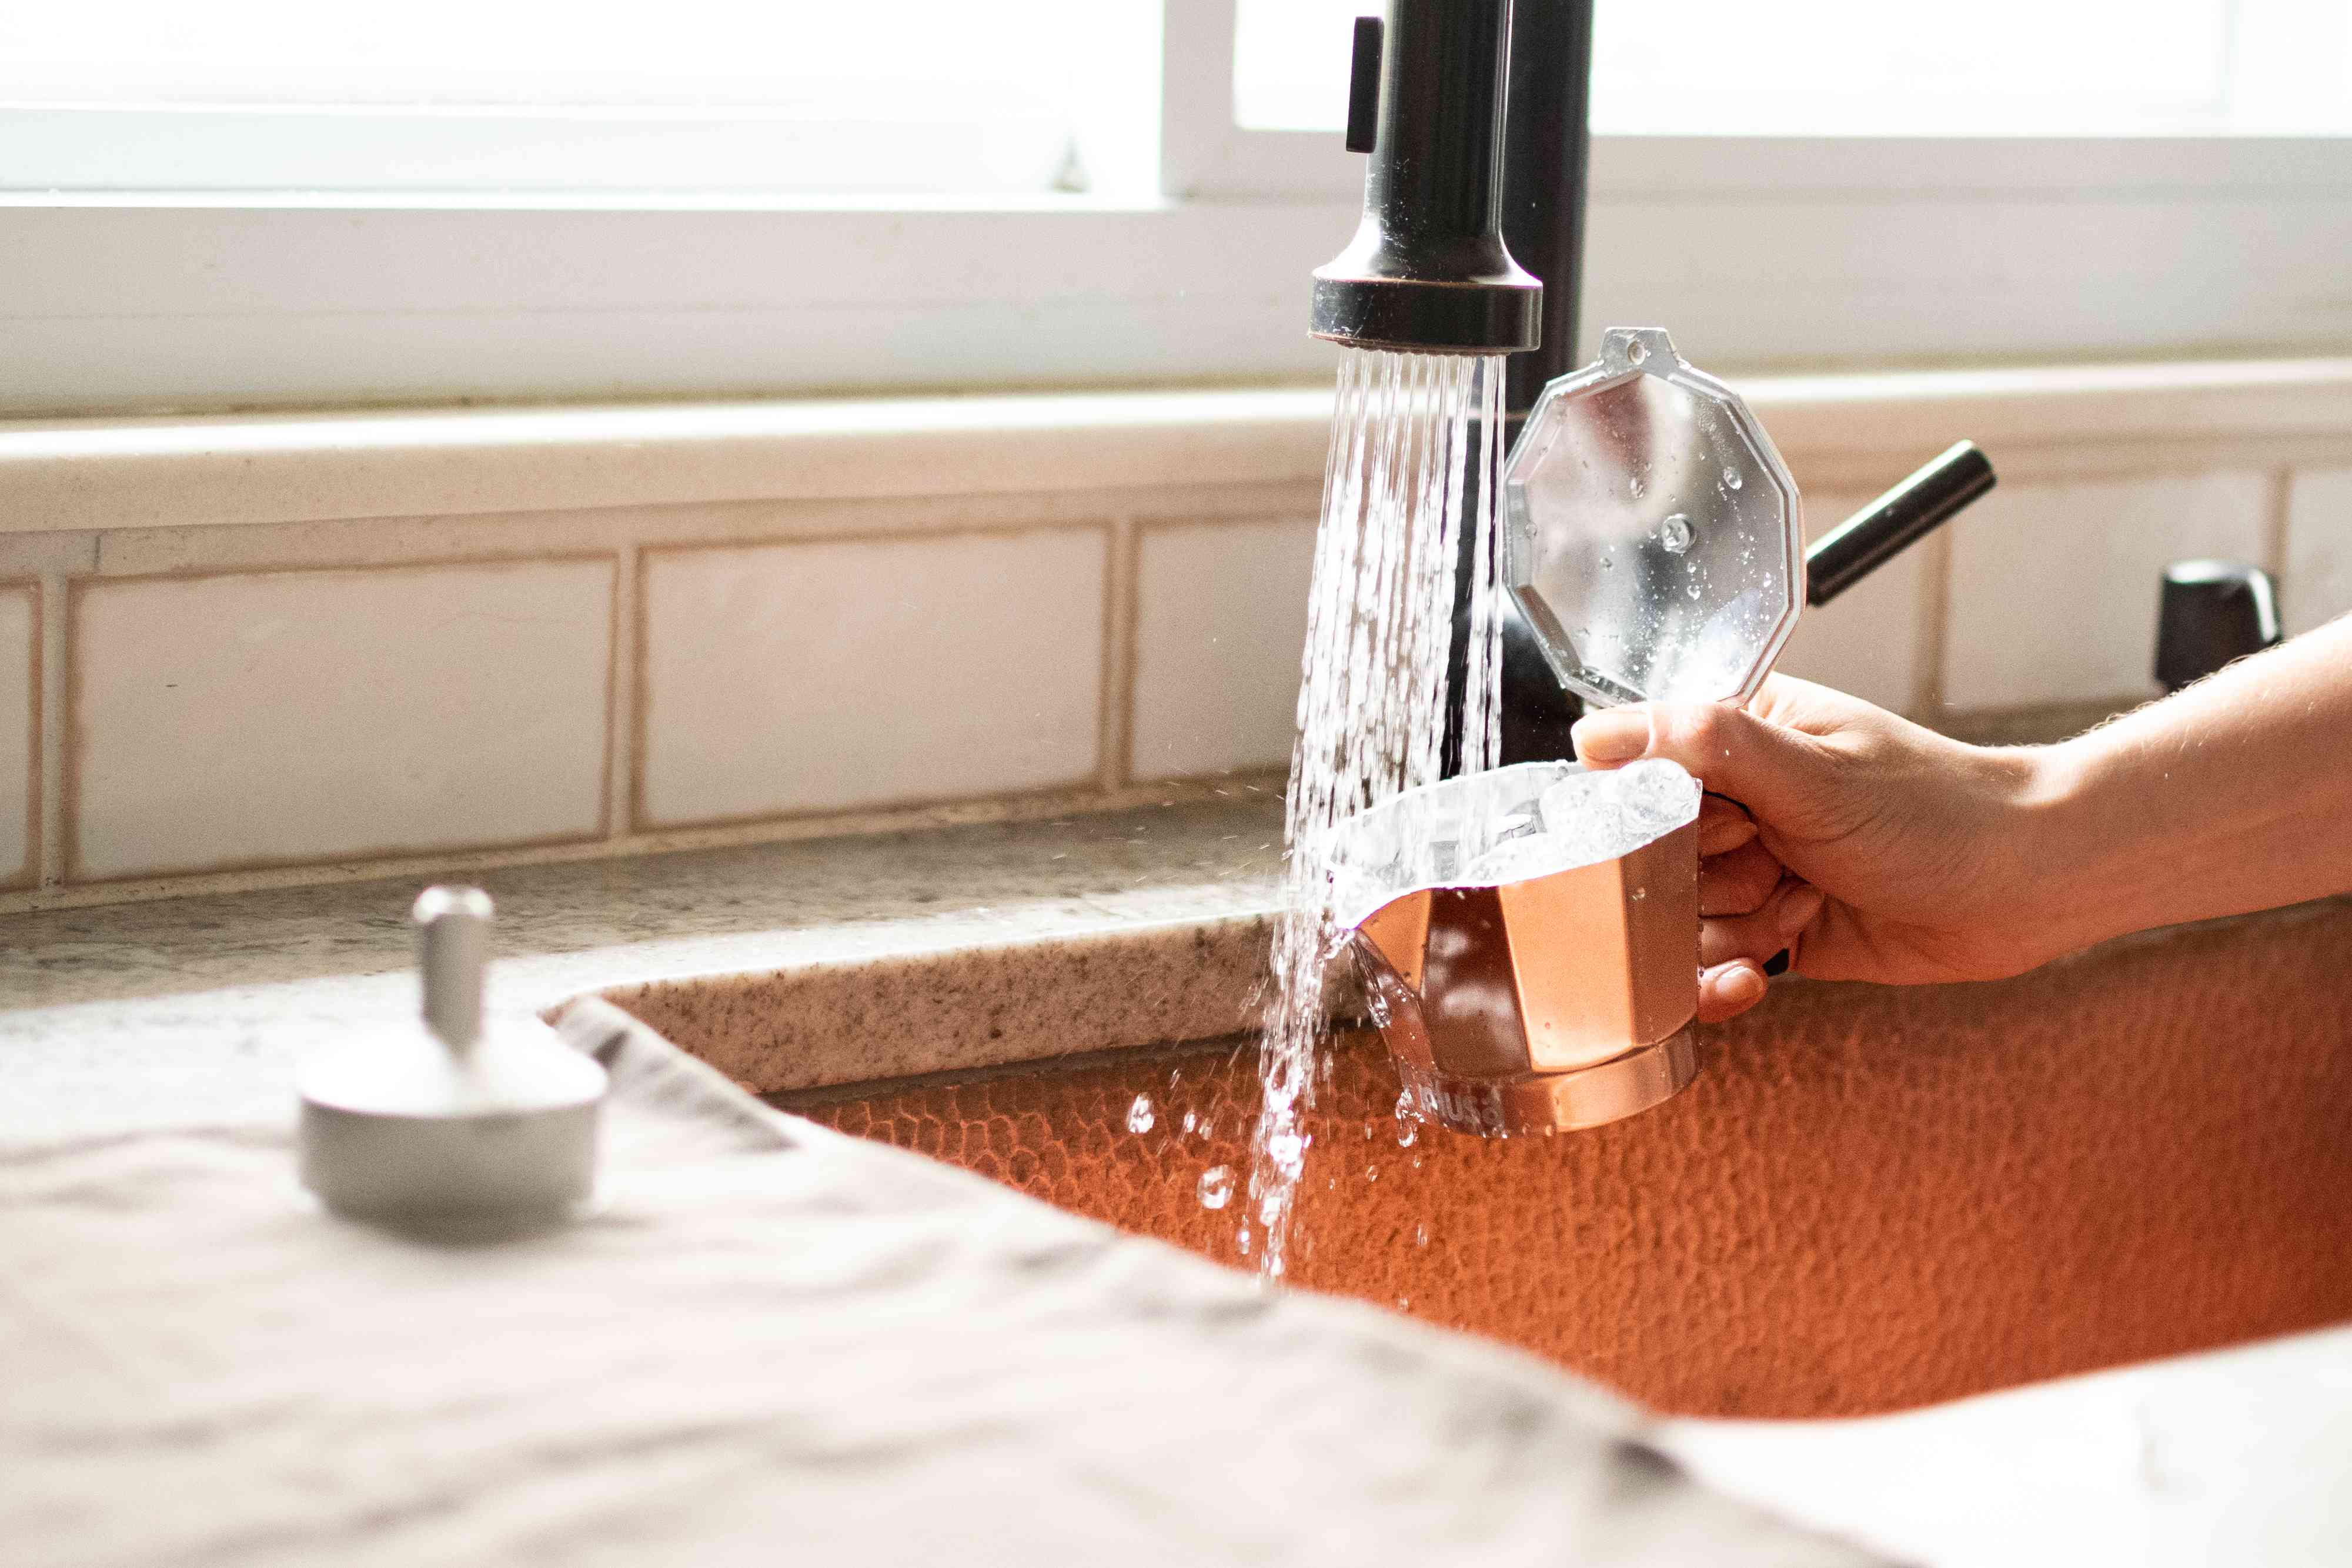 Moka pot compartments rinsed under running faucet with hot water